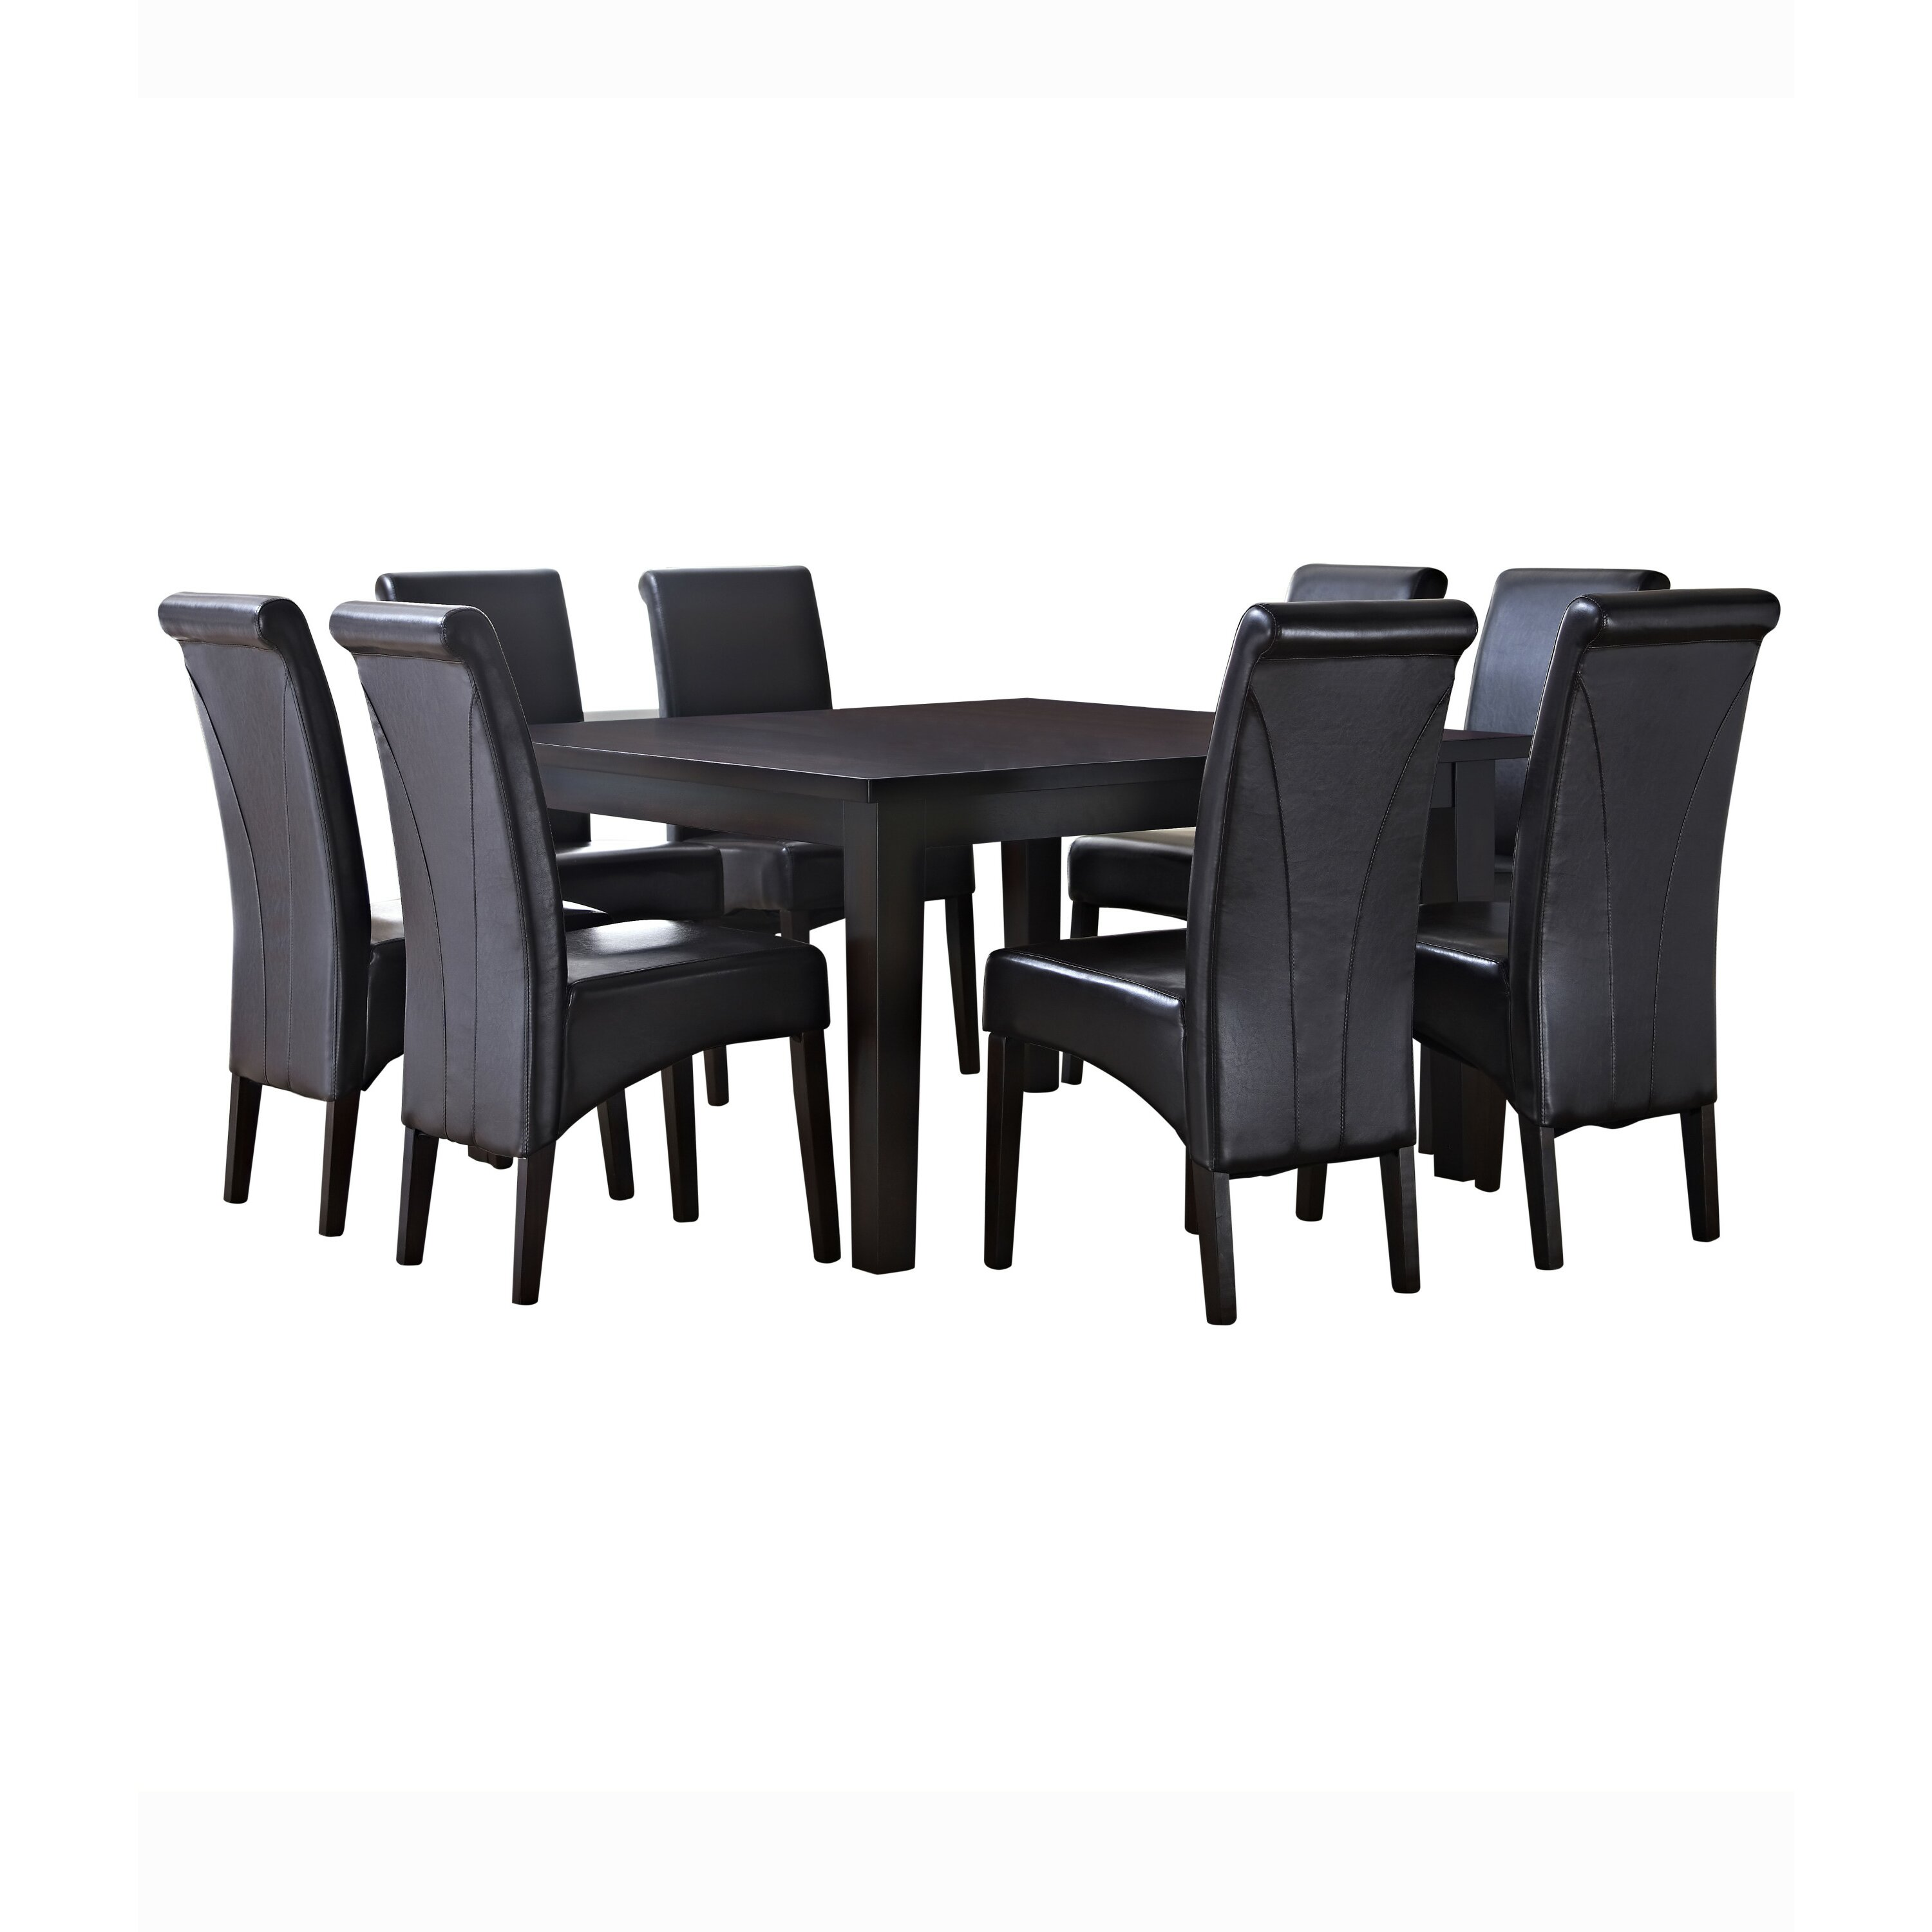 Simpli home avalon 9 piece dining set wayfair for 9 piece dining room furniture